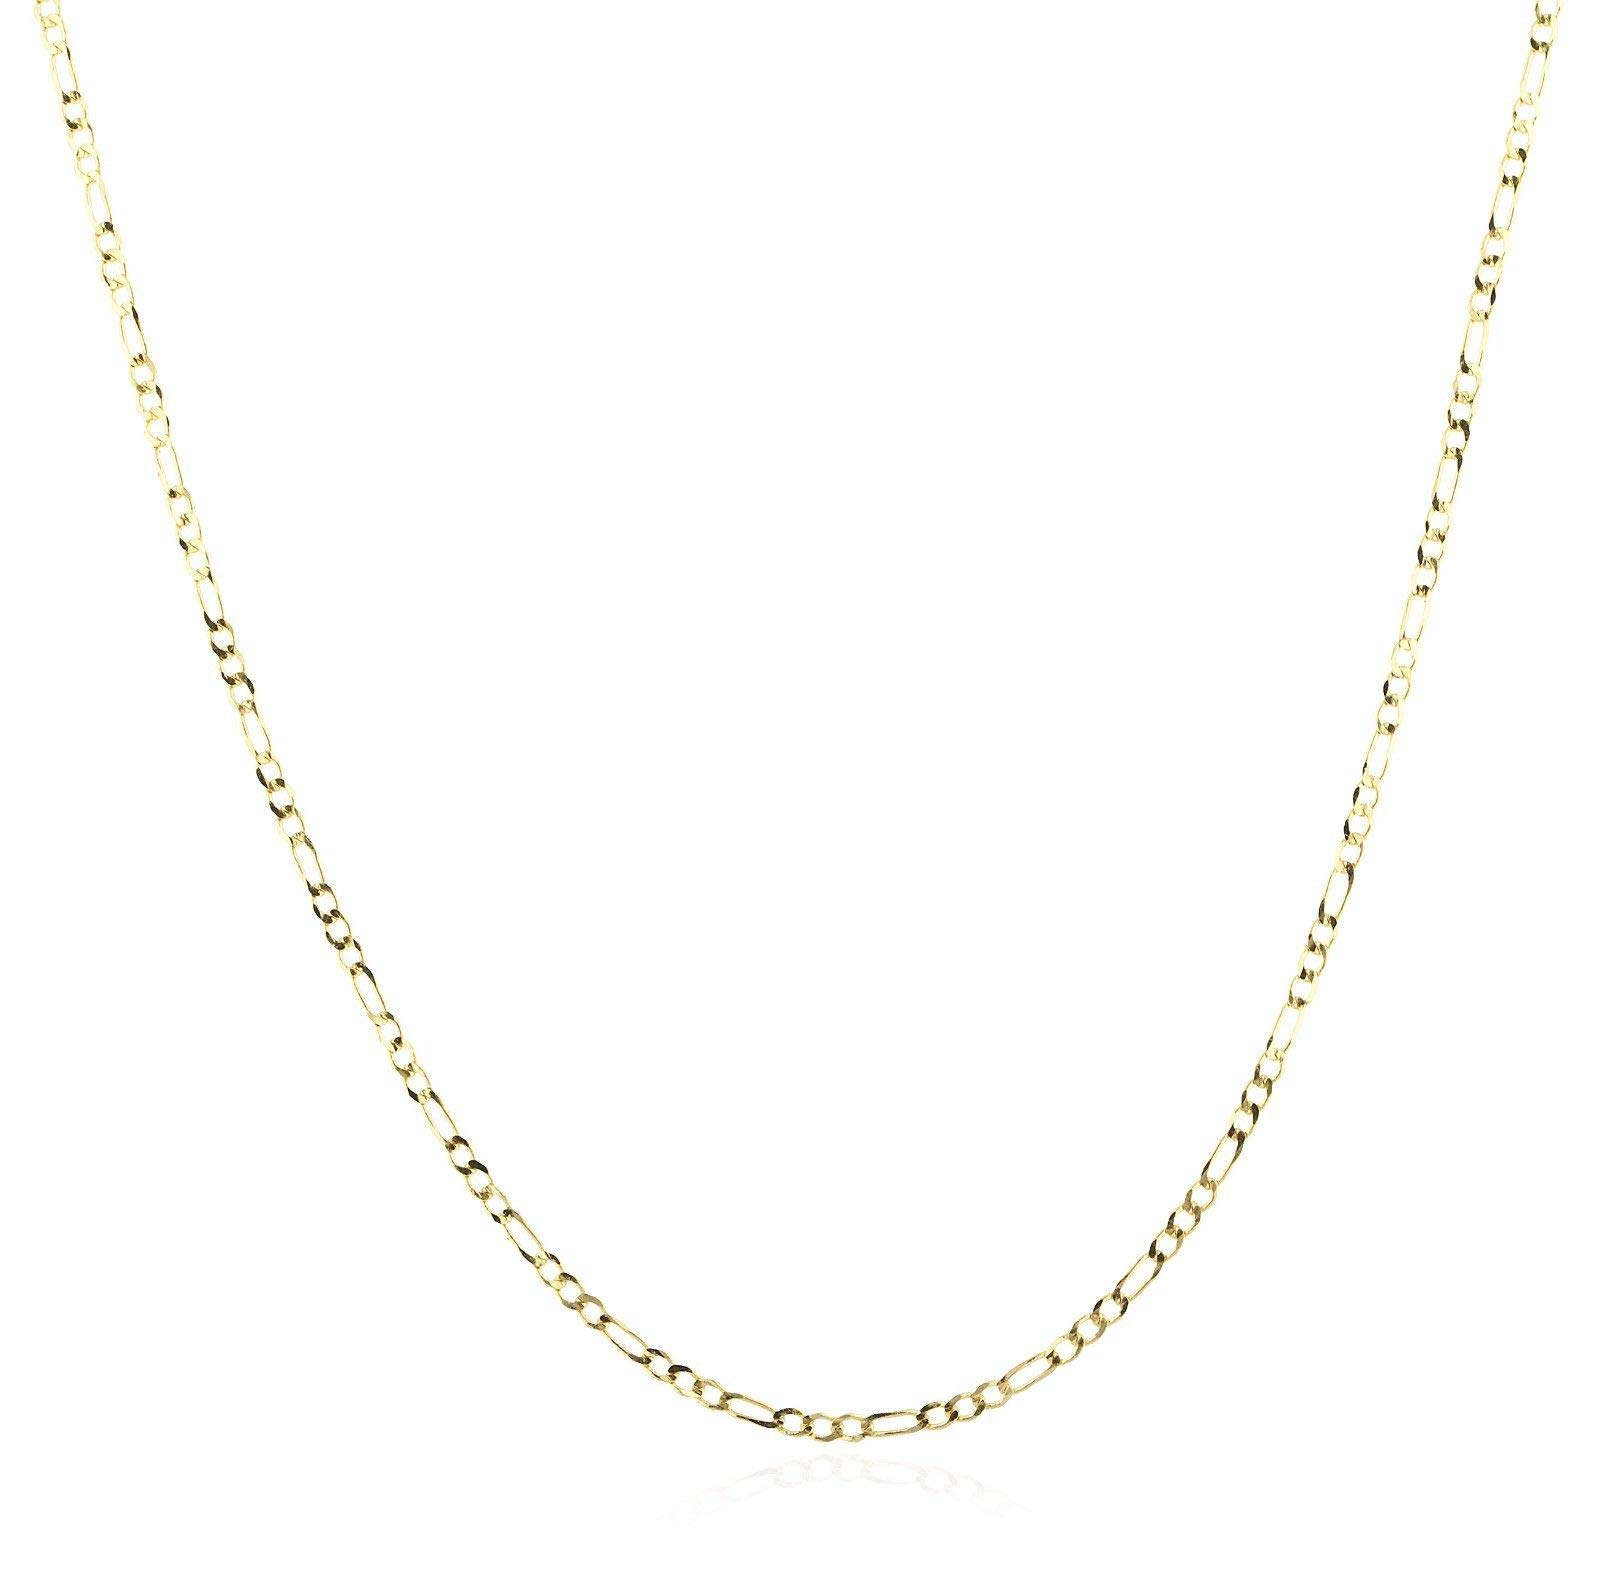 14K Gold 2.0mm Figaro/3+1 Link Chain Necklace- Made in Italy - Multiple Colors and Sizes Available (Yellow, 22)